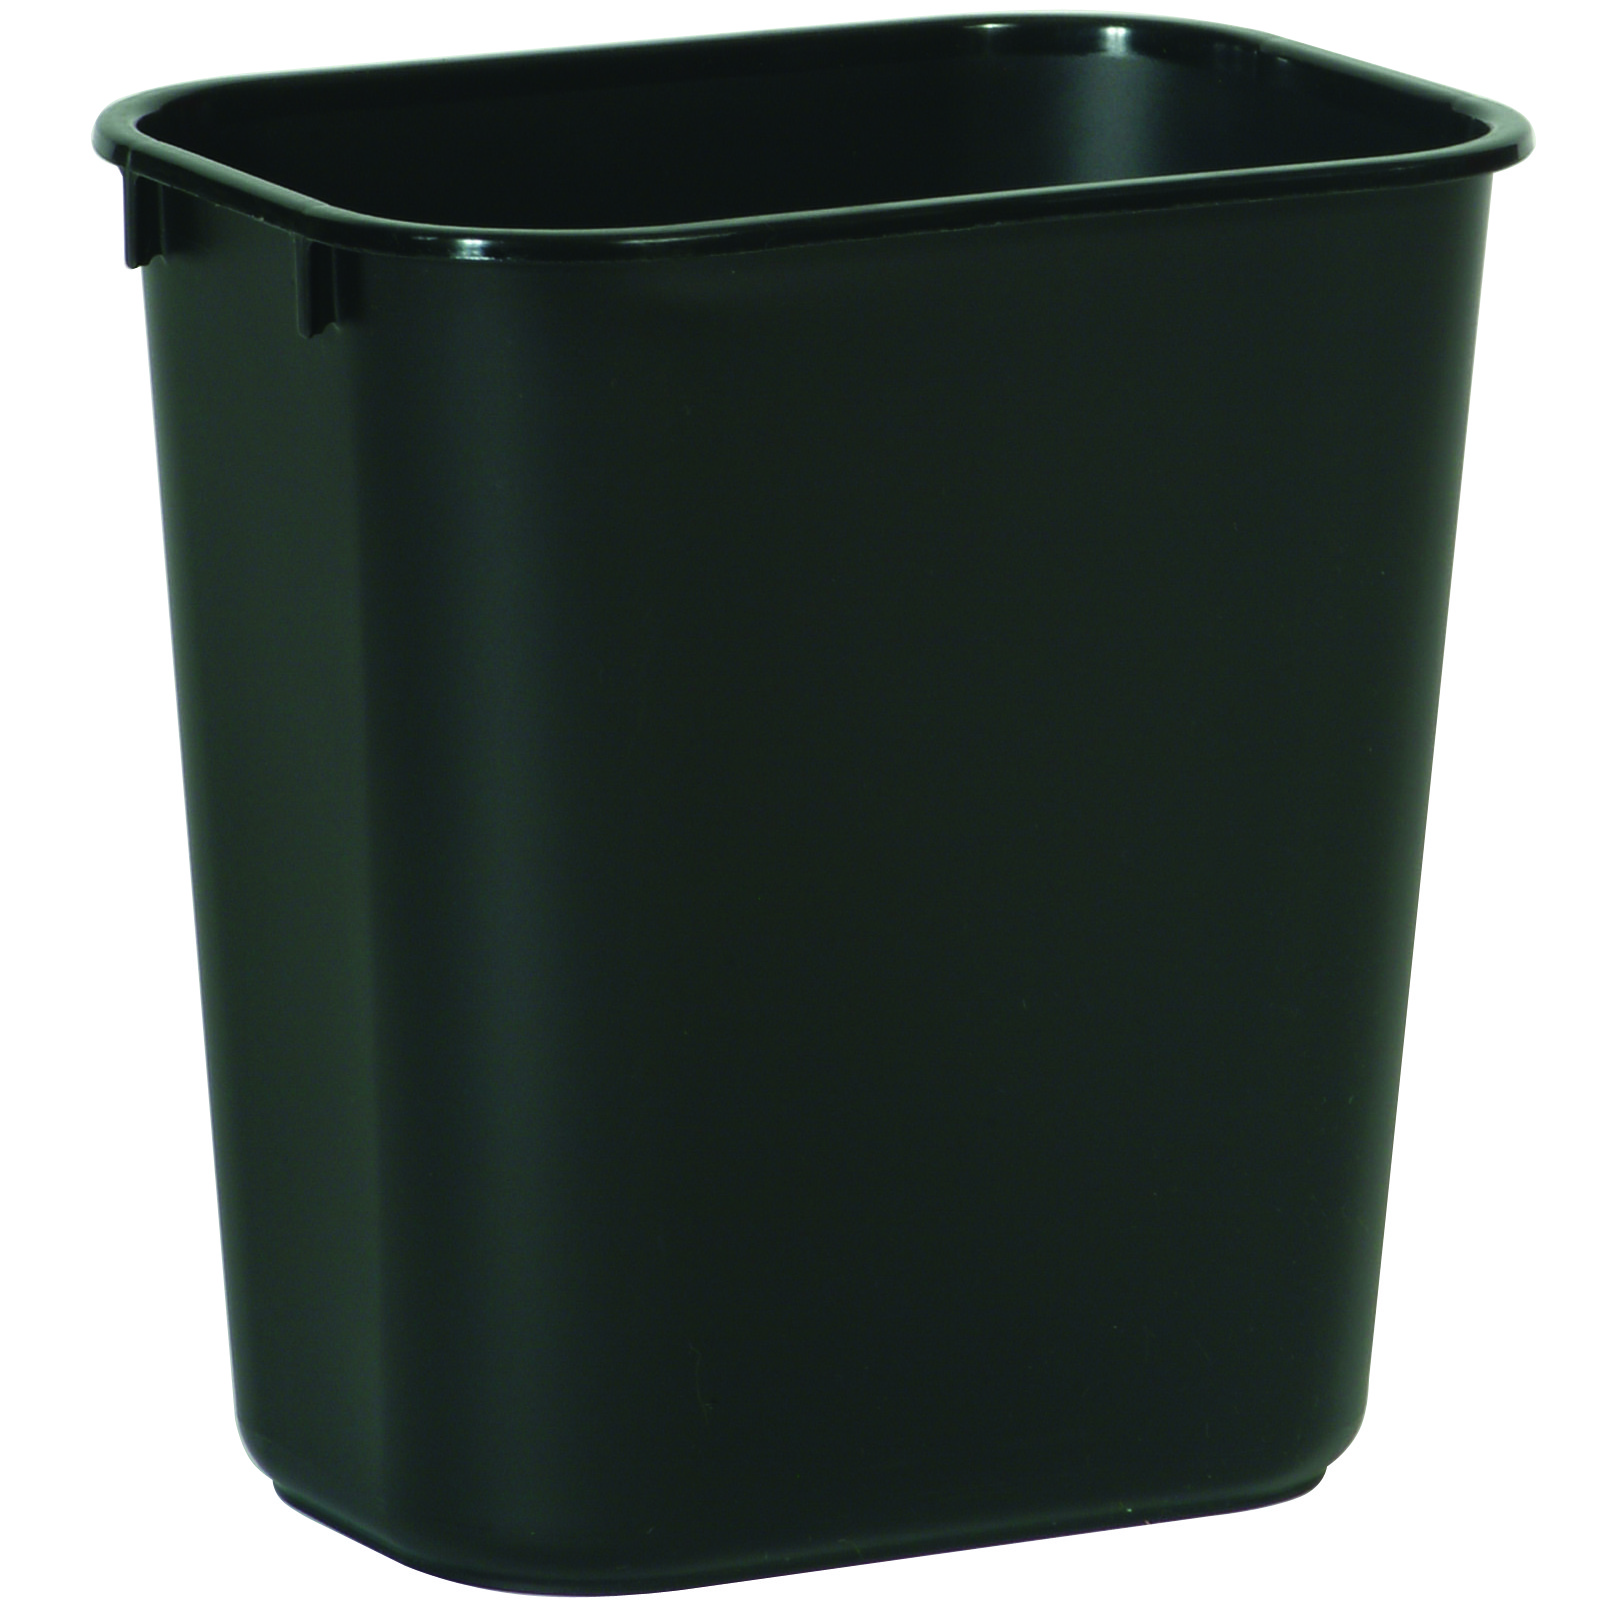 small wastebasket in black - Rubbermaid Garbage Cans